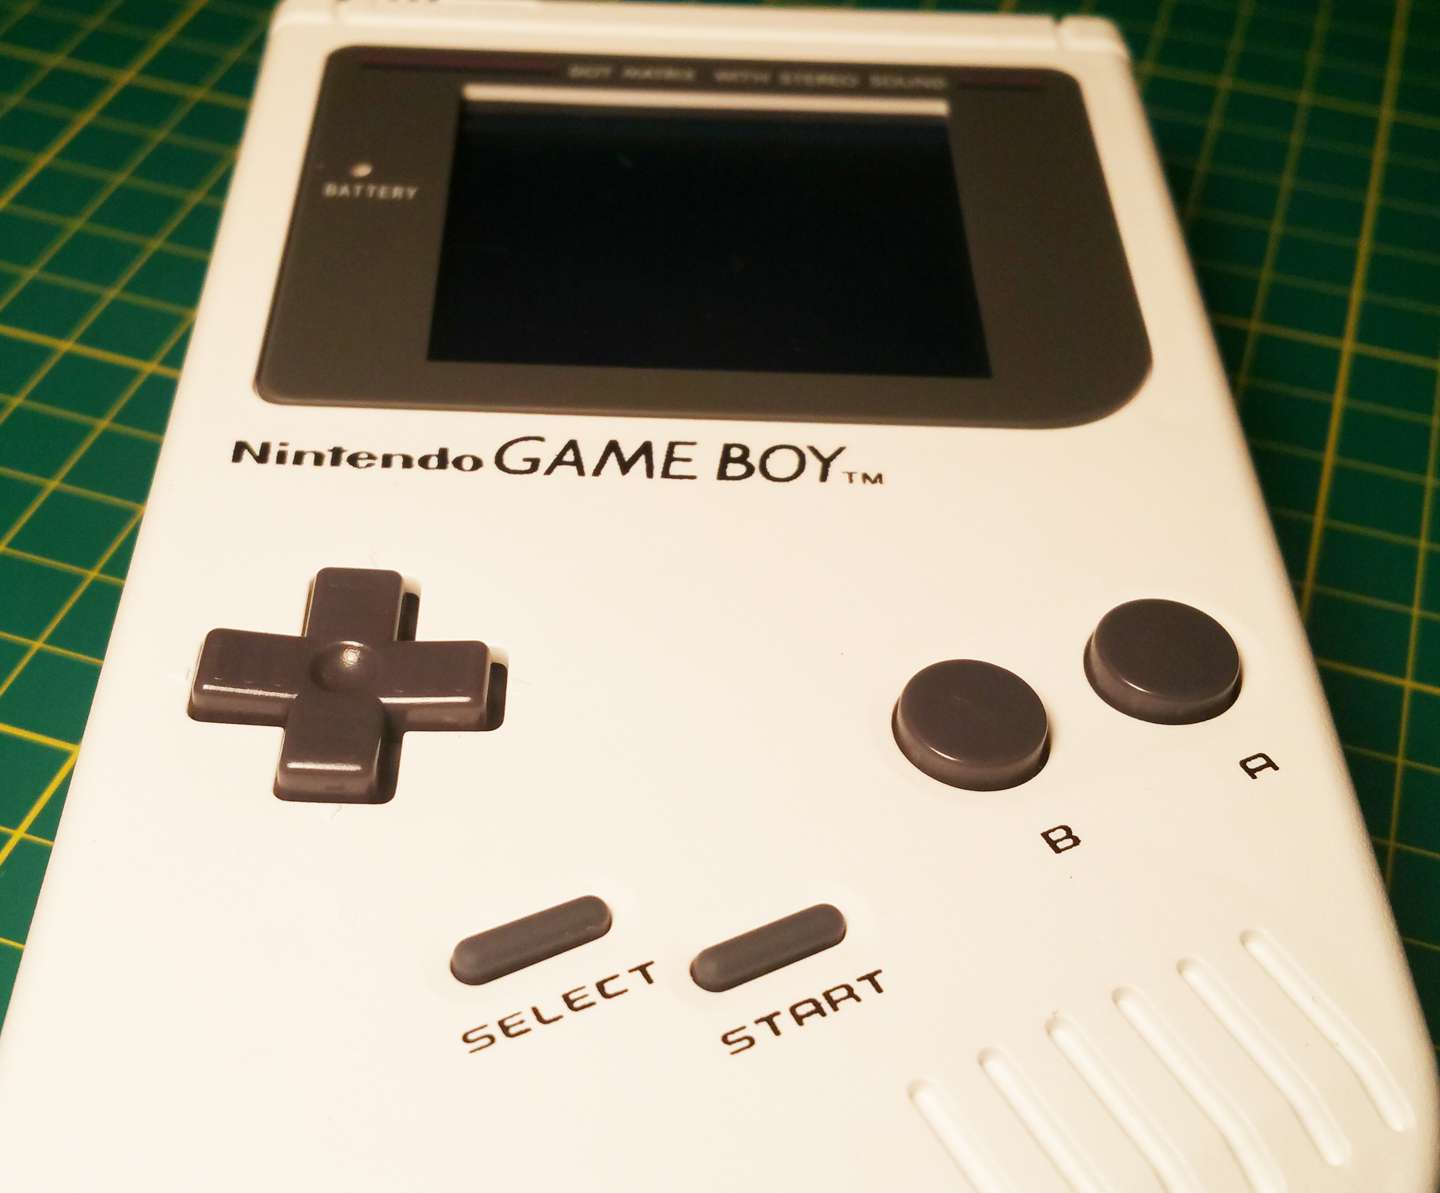 6f414dea849 The ultimate Original Game Boy (DMG-01) troubleshooting and repair ...